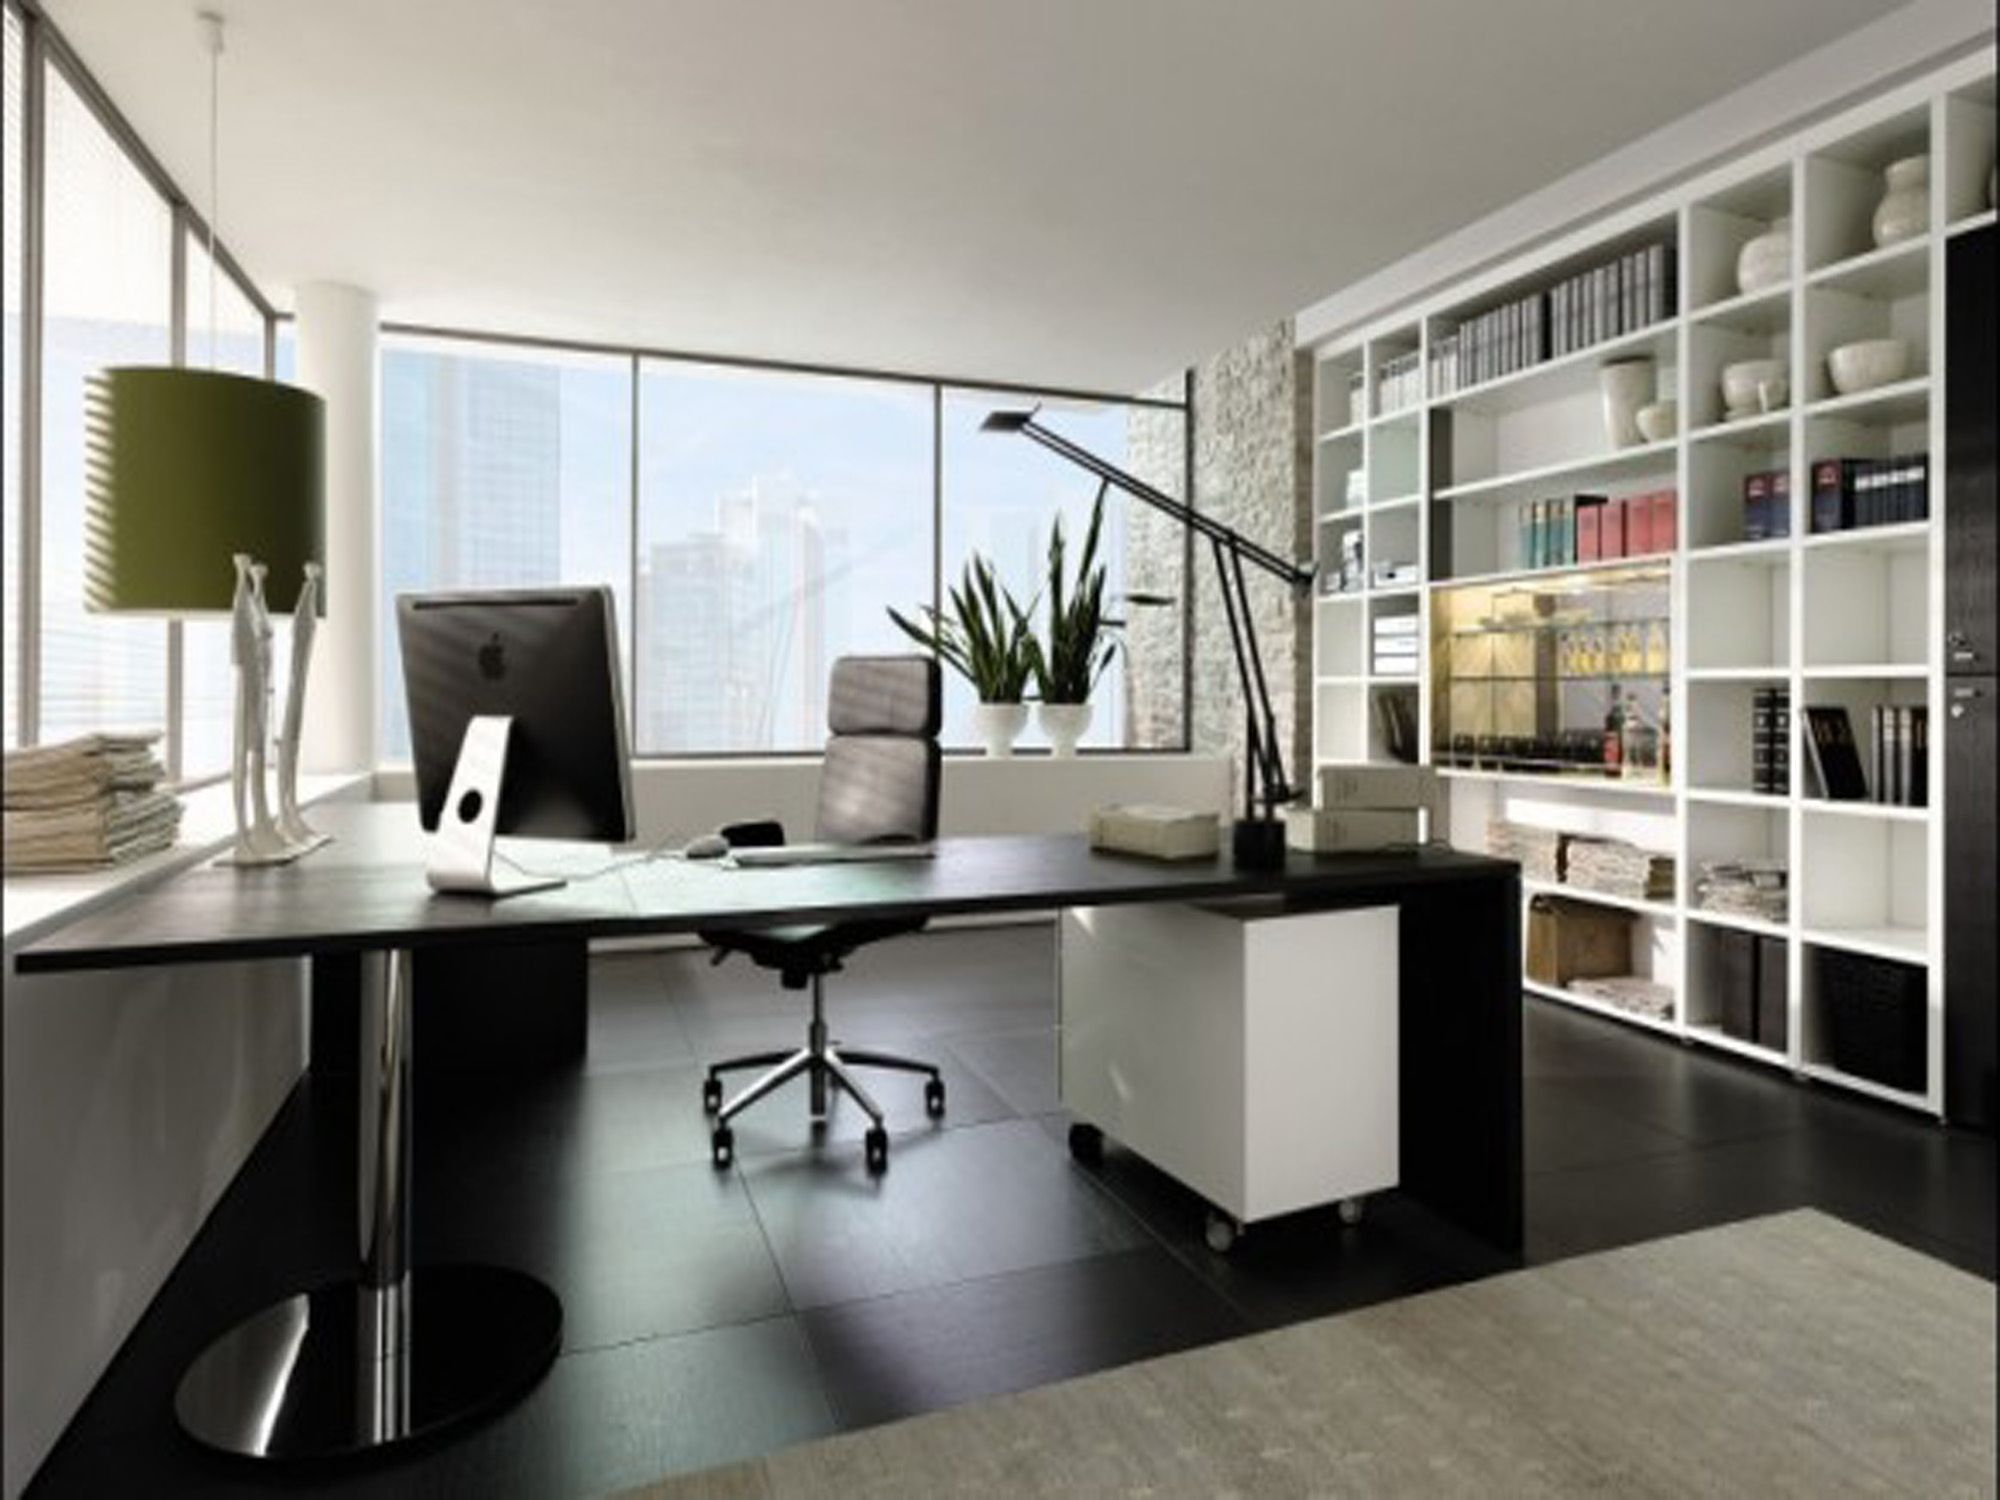 Home+office+decorating+ideas | Office Design Ideas In Ecru And Beige |